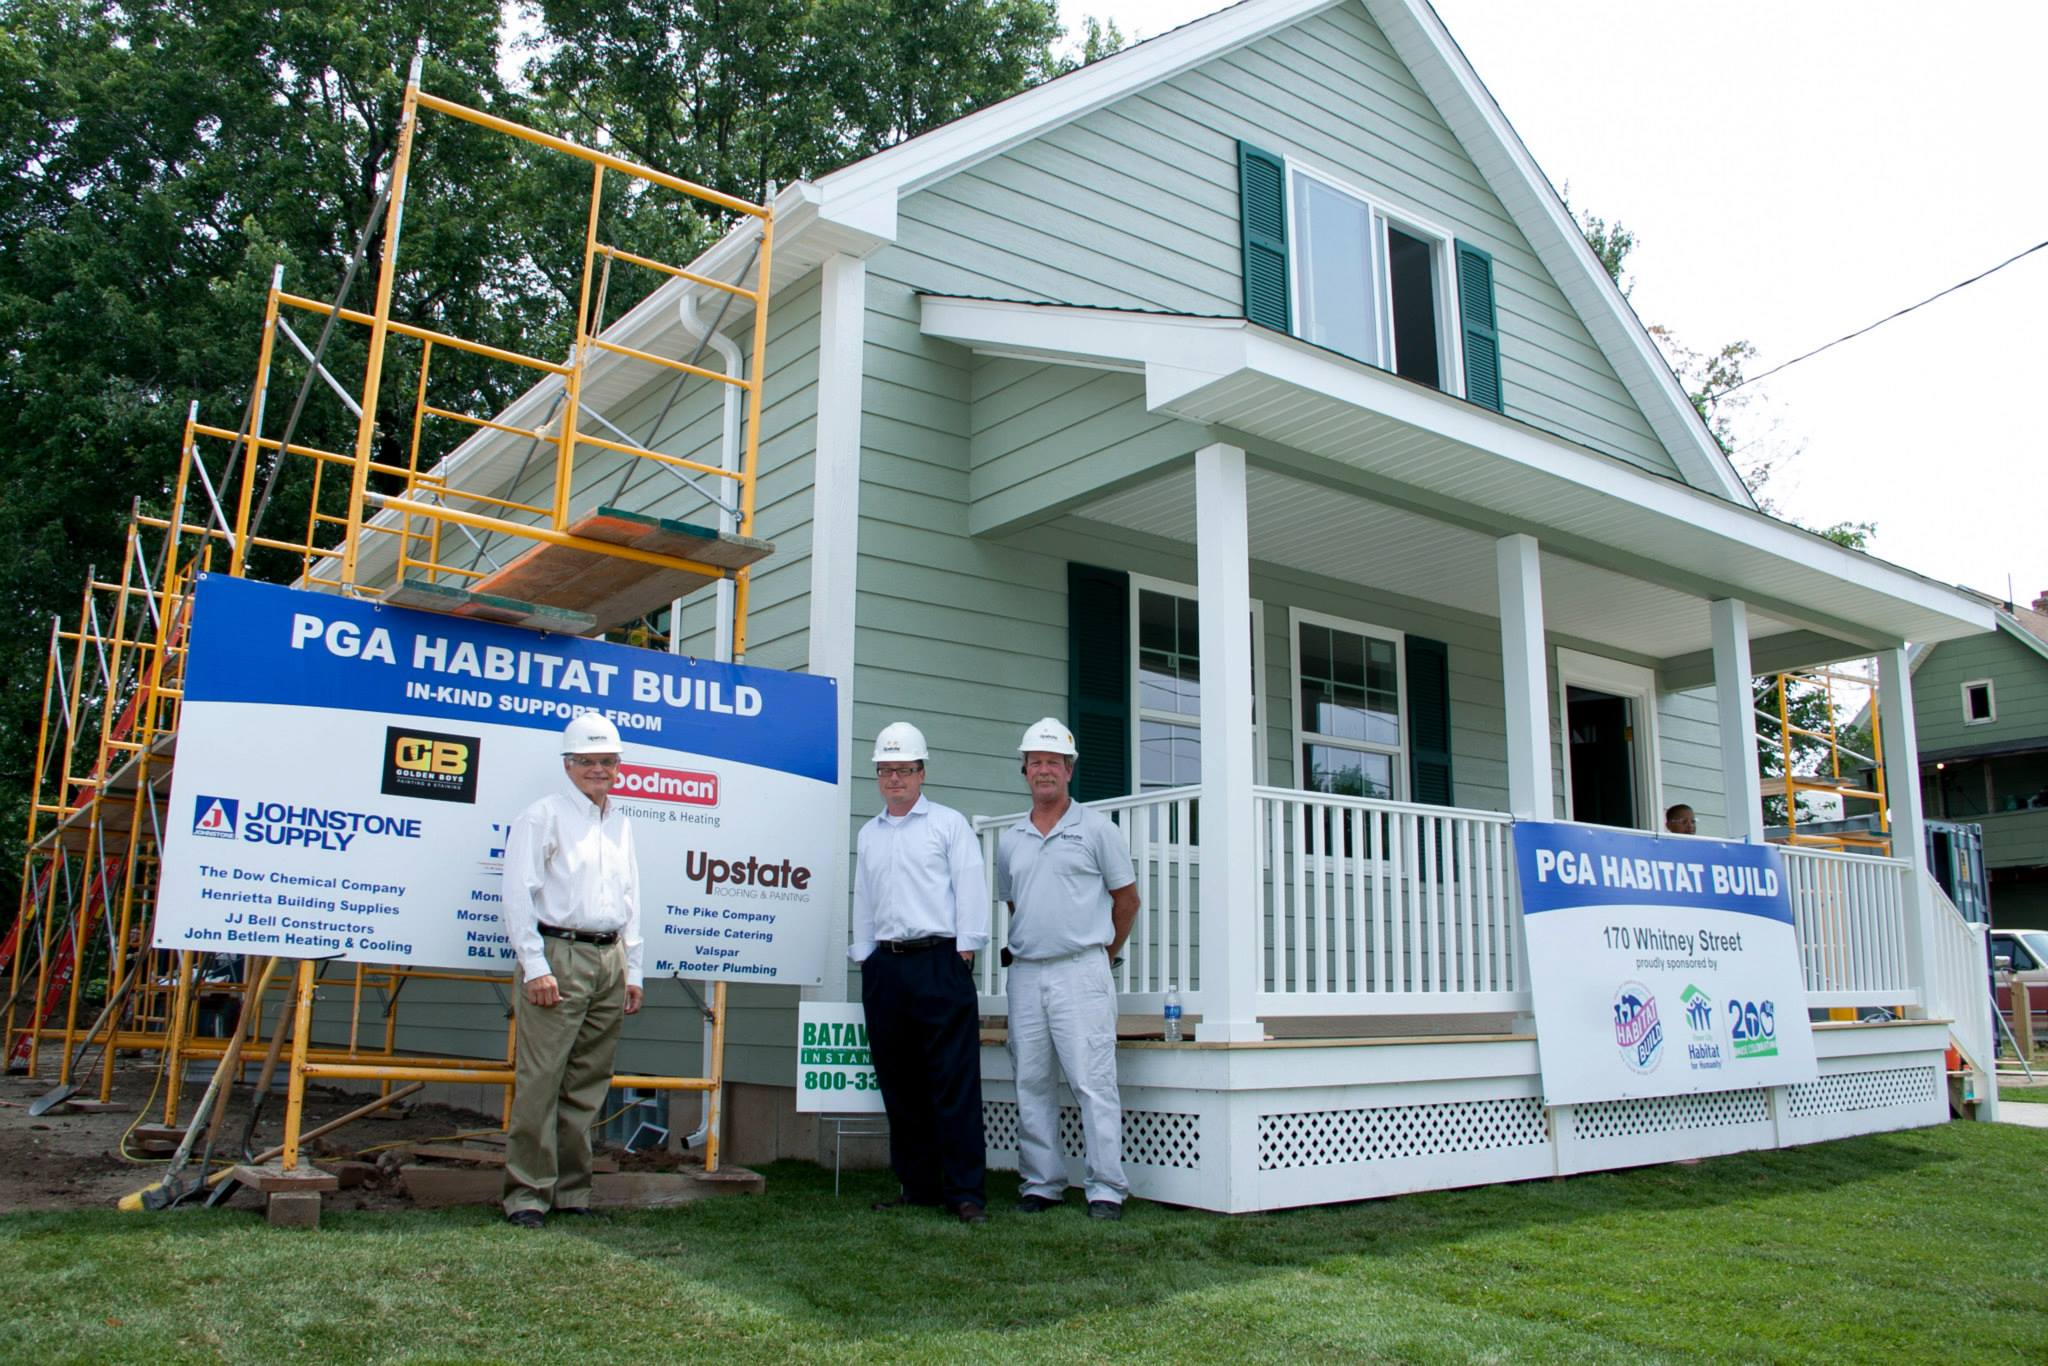 Upstate Roofing and Painting - Habitat for Humanity